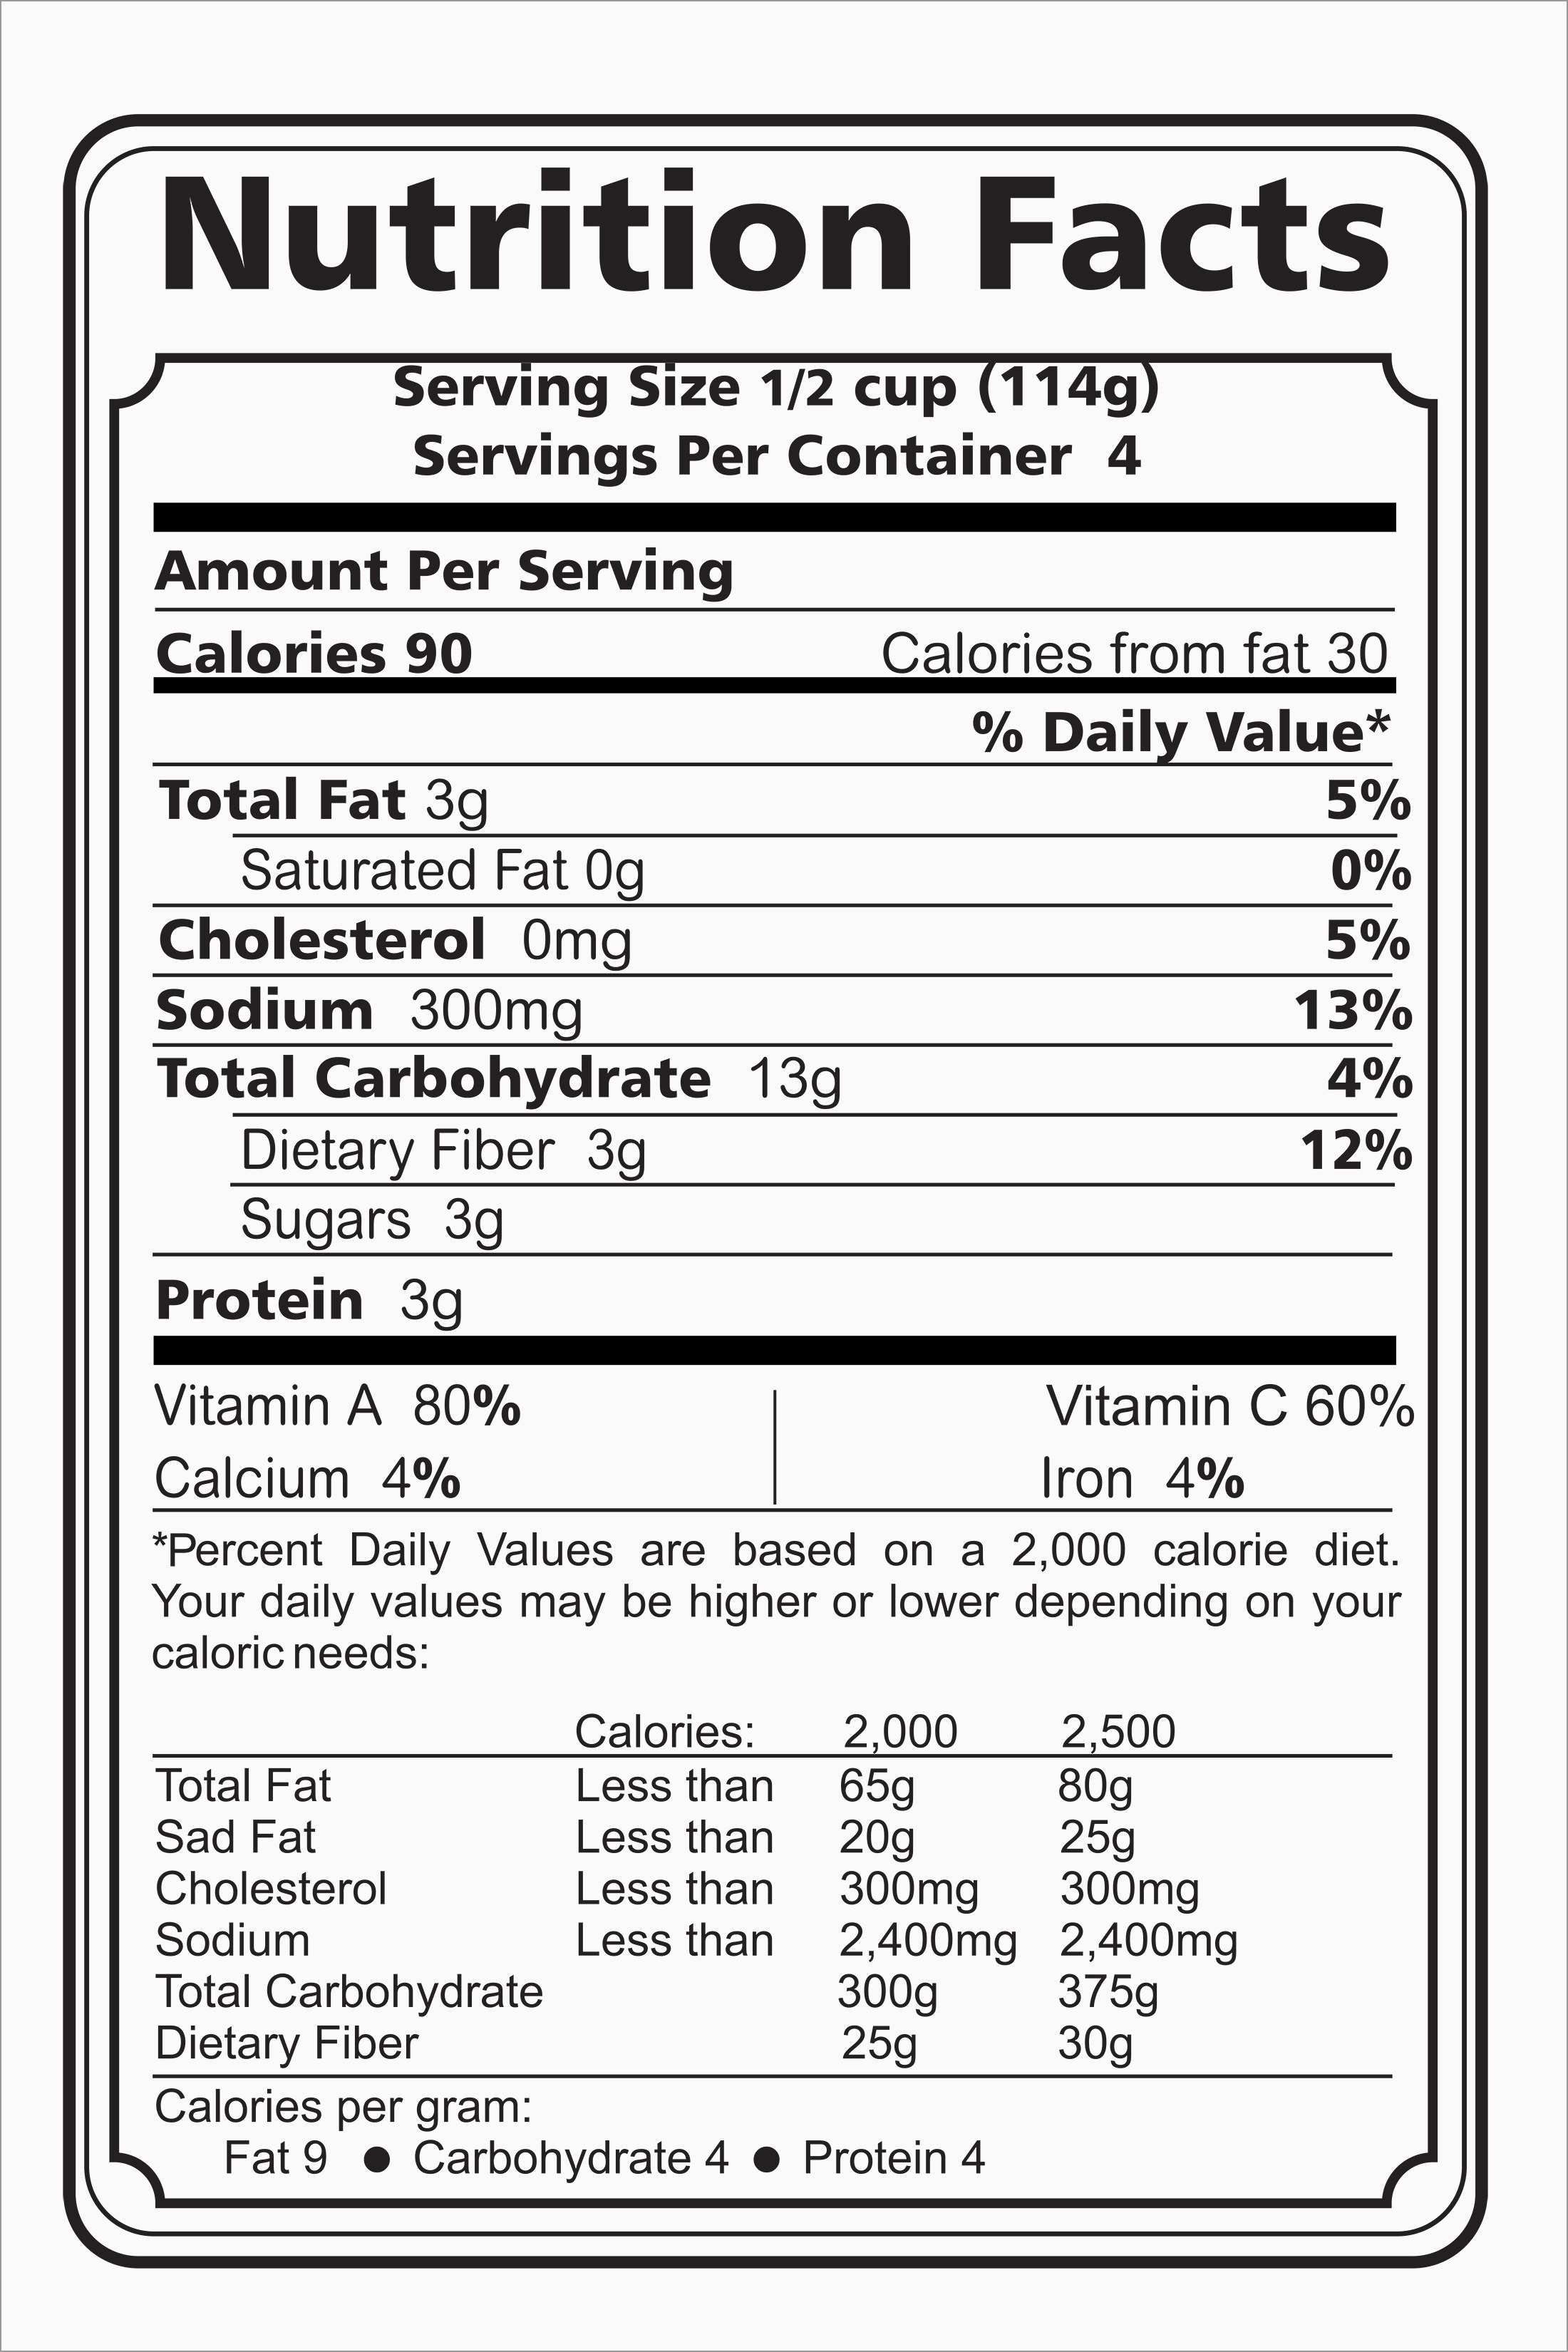 Free Blank Nutrition Label Template Awesome Bake Sale Label Inside Blank Nutrition Label Worksheet